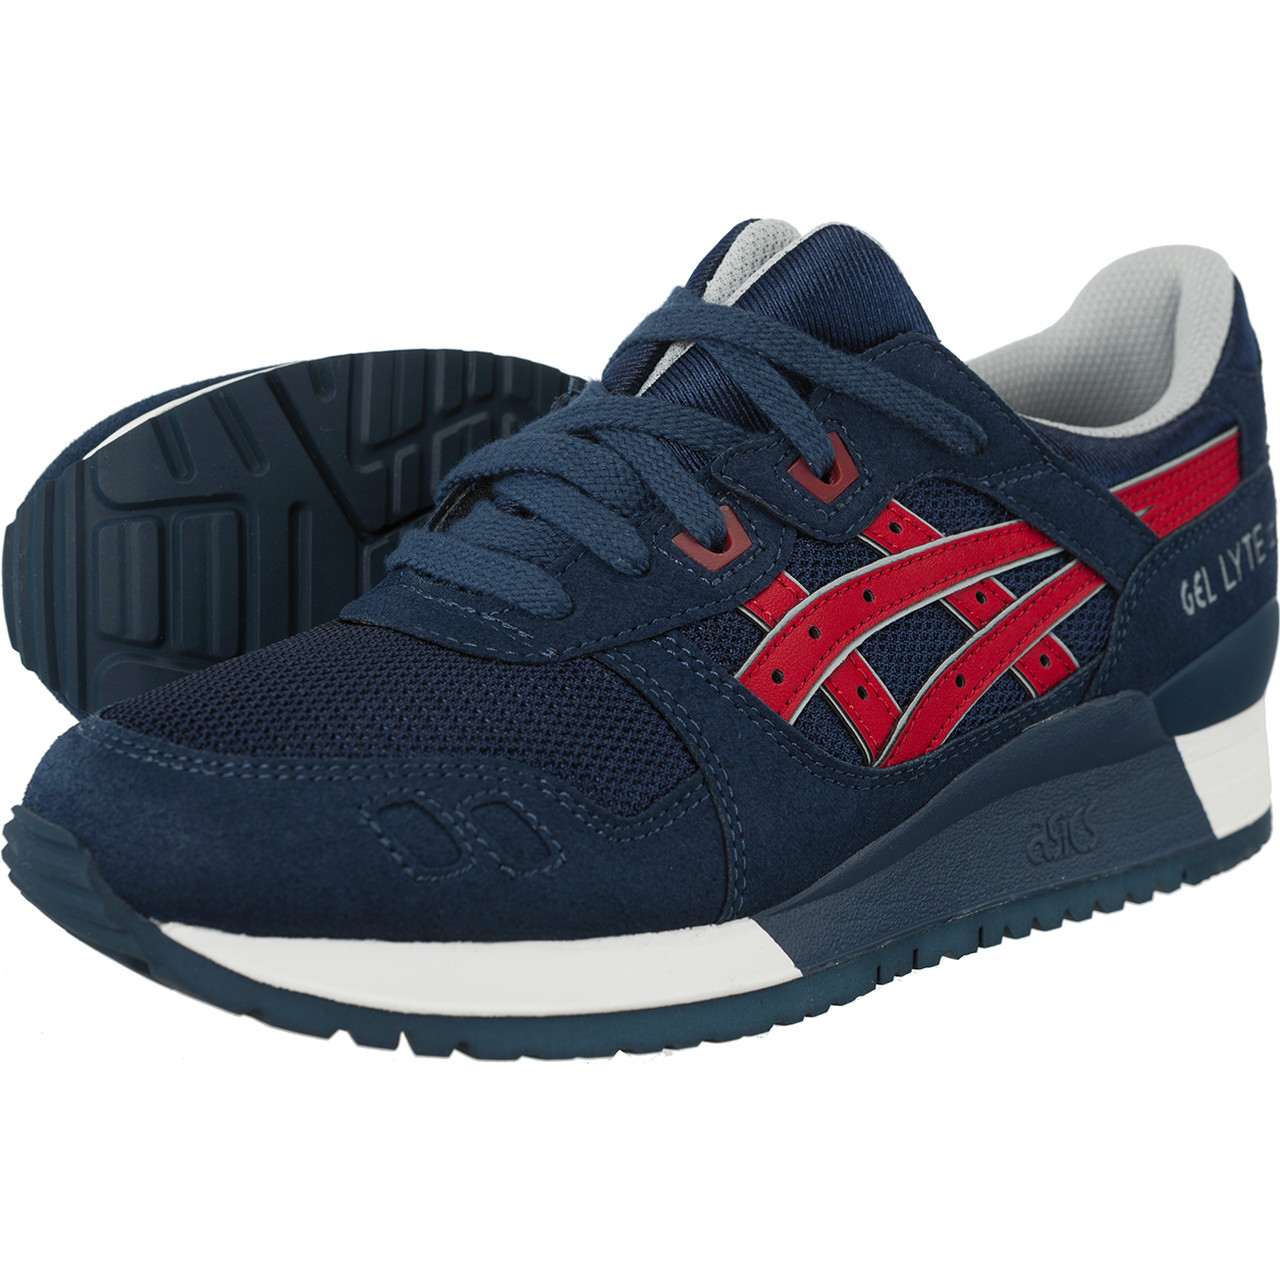 asics gel lyte iii do chodzenia